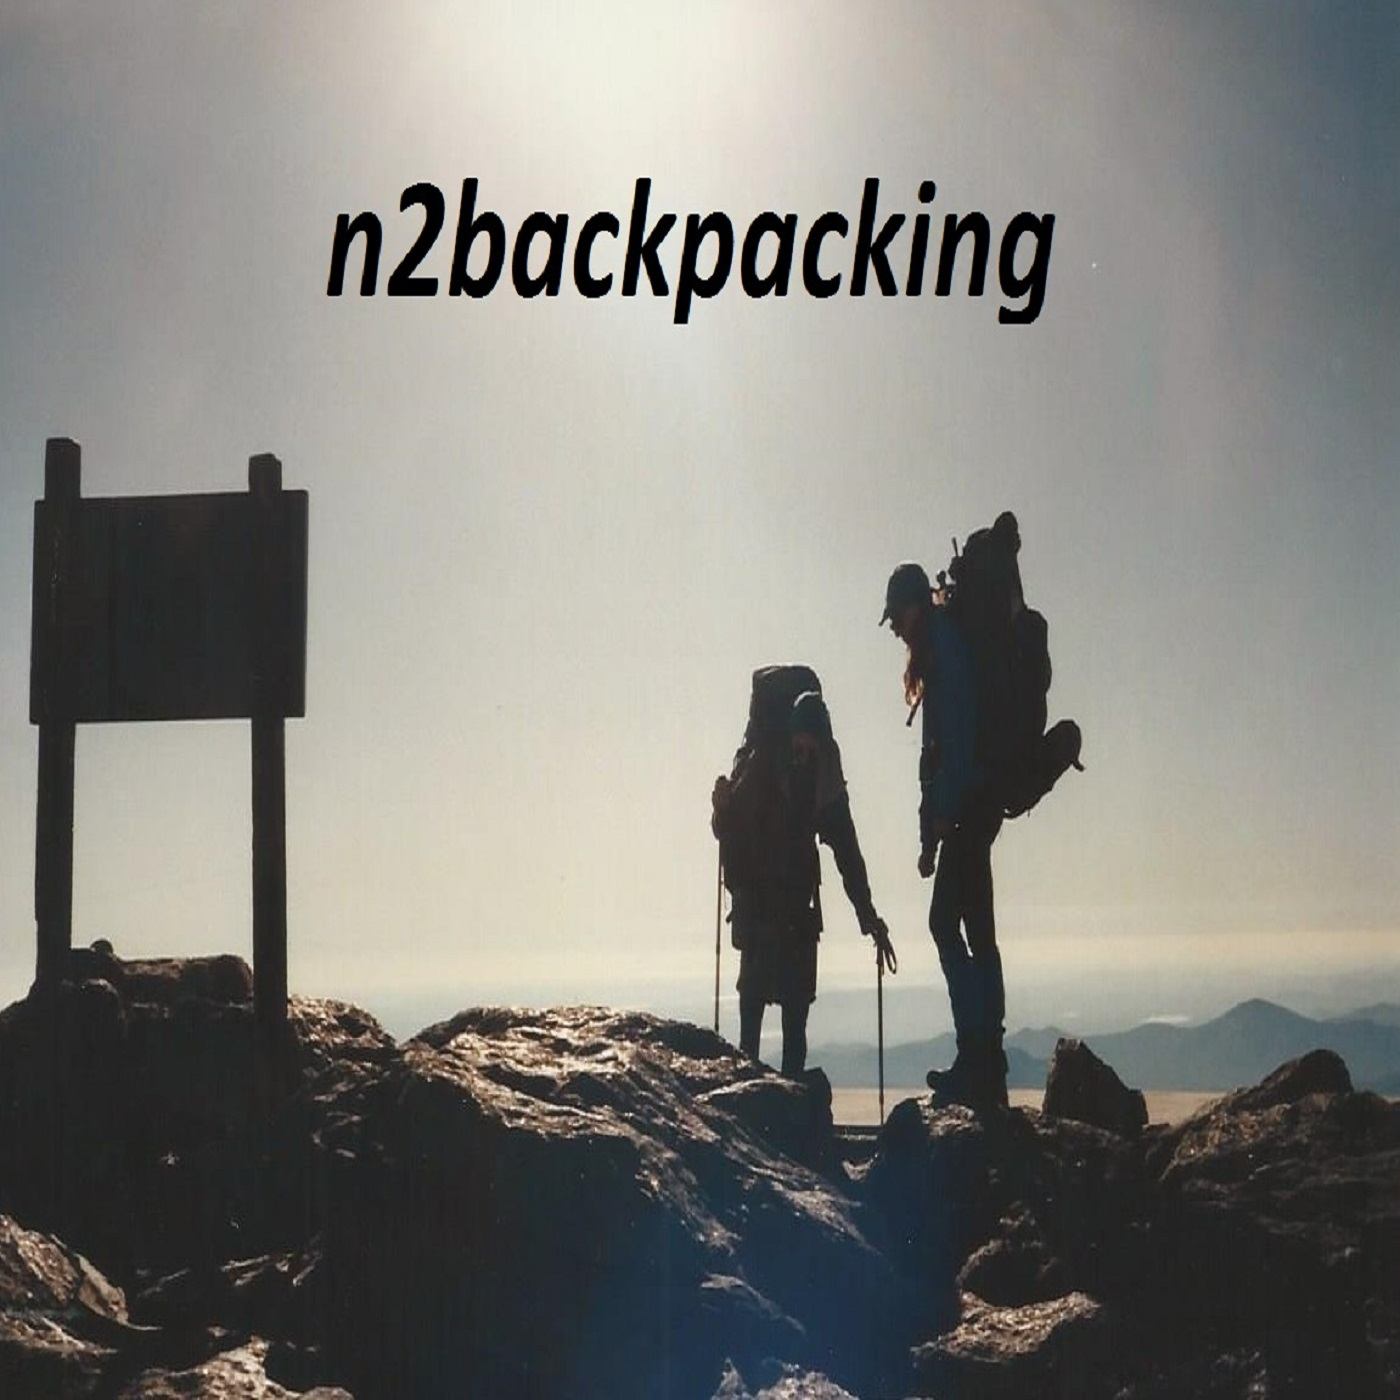 n2backpacking